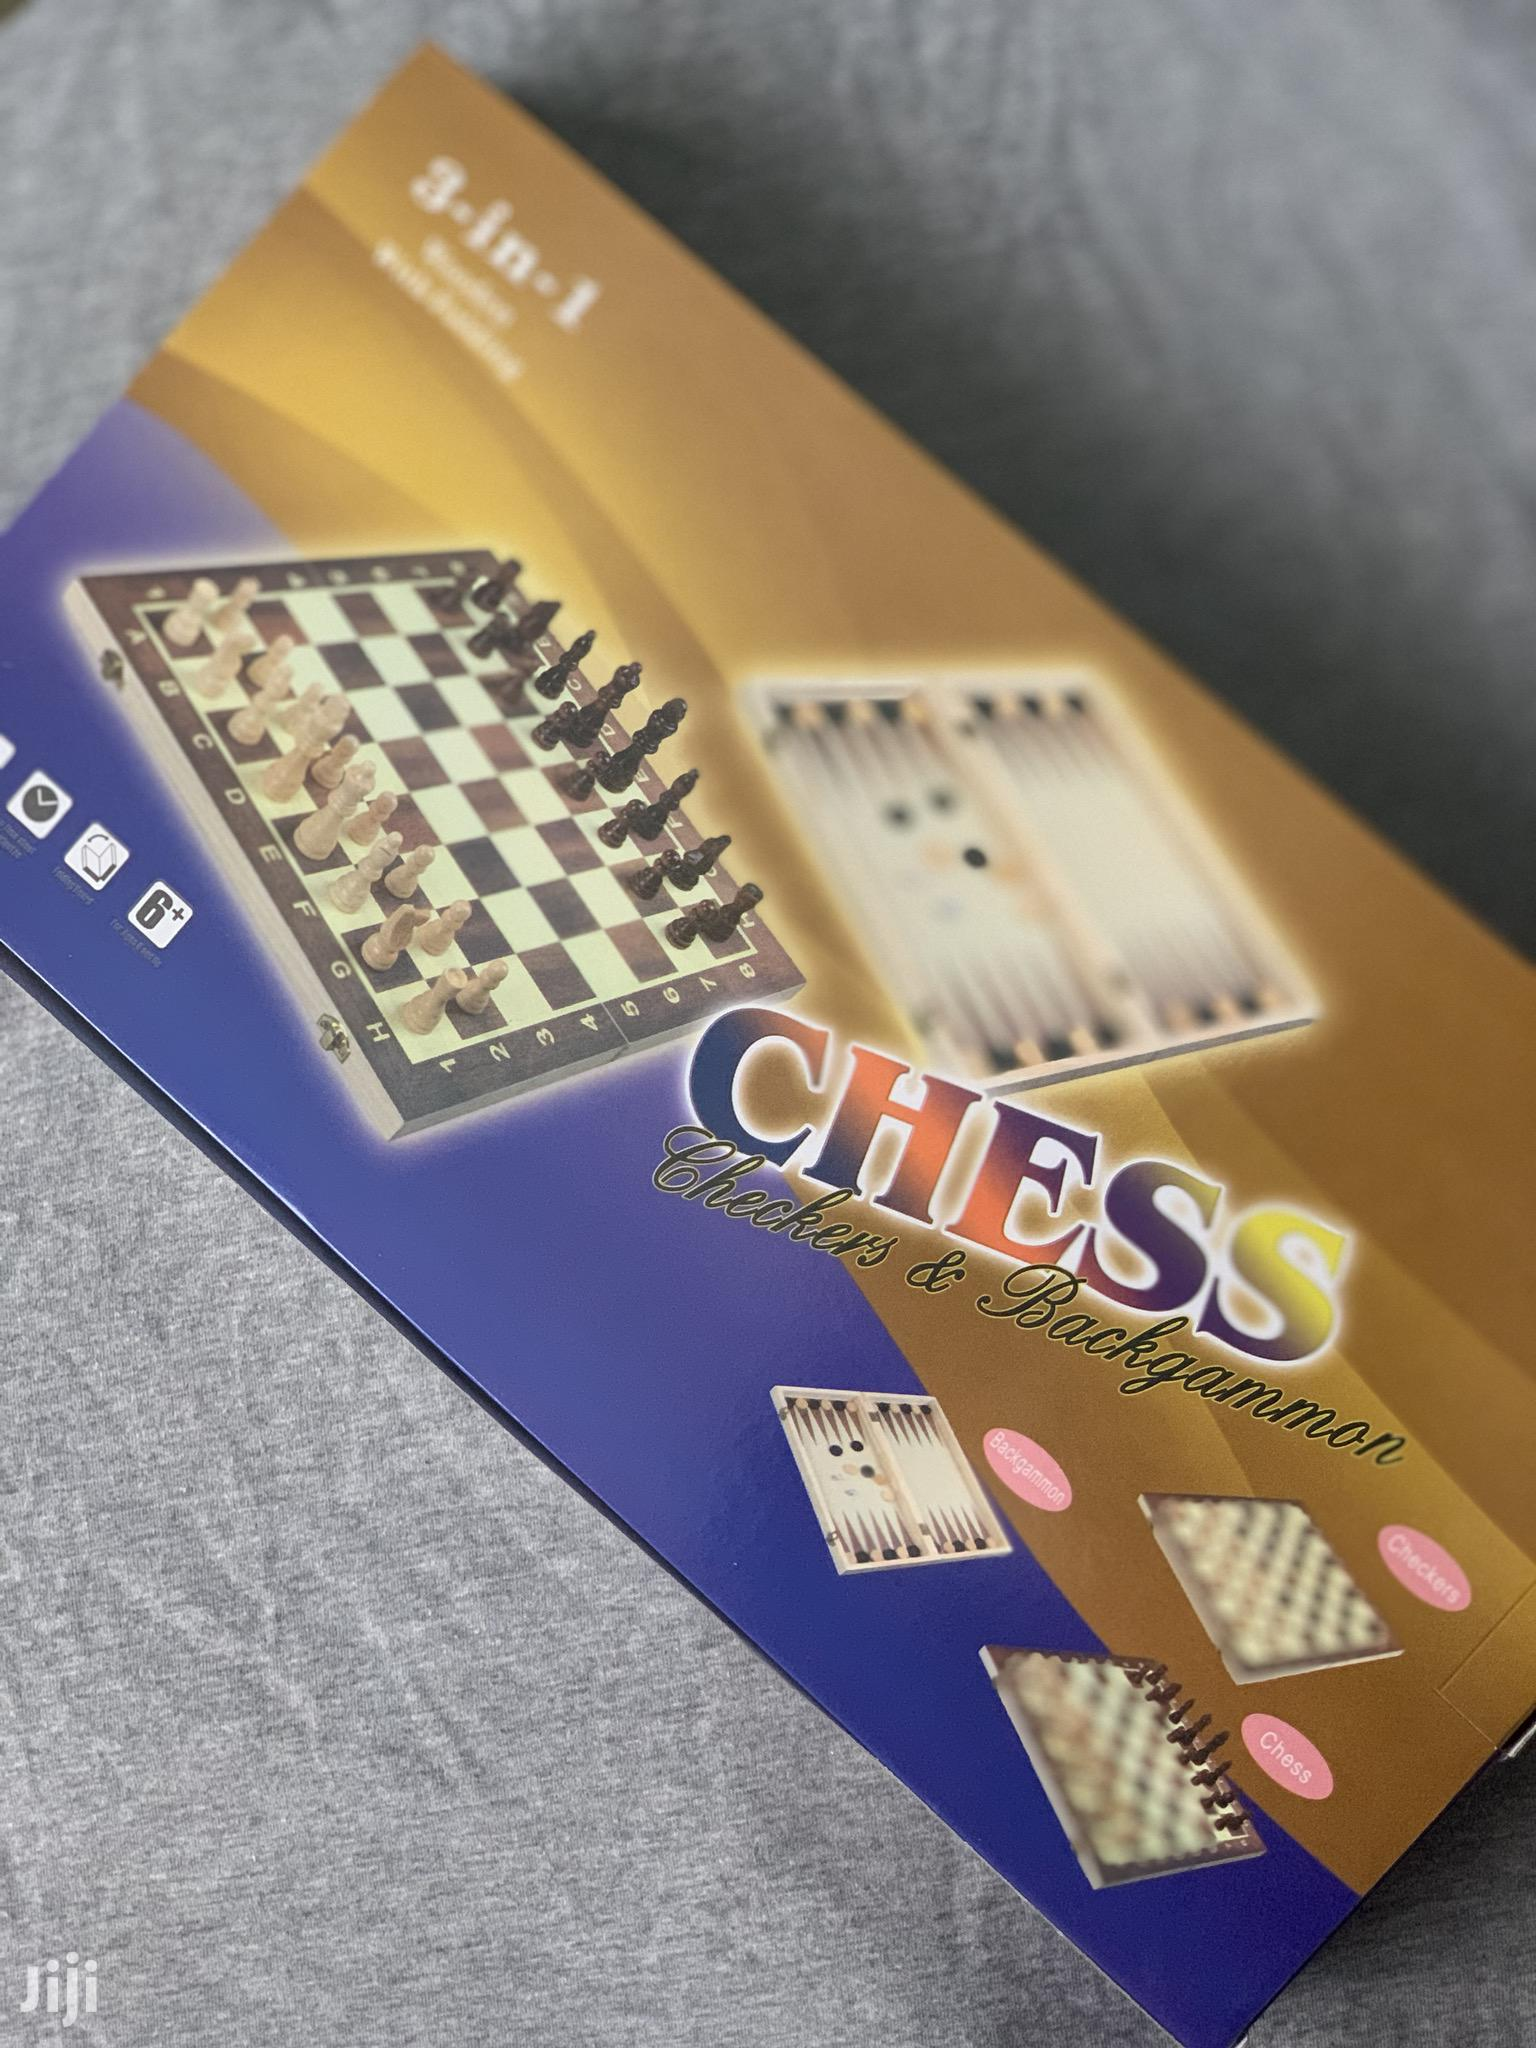 Archive: Chess Board Game